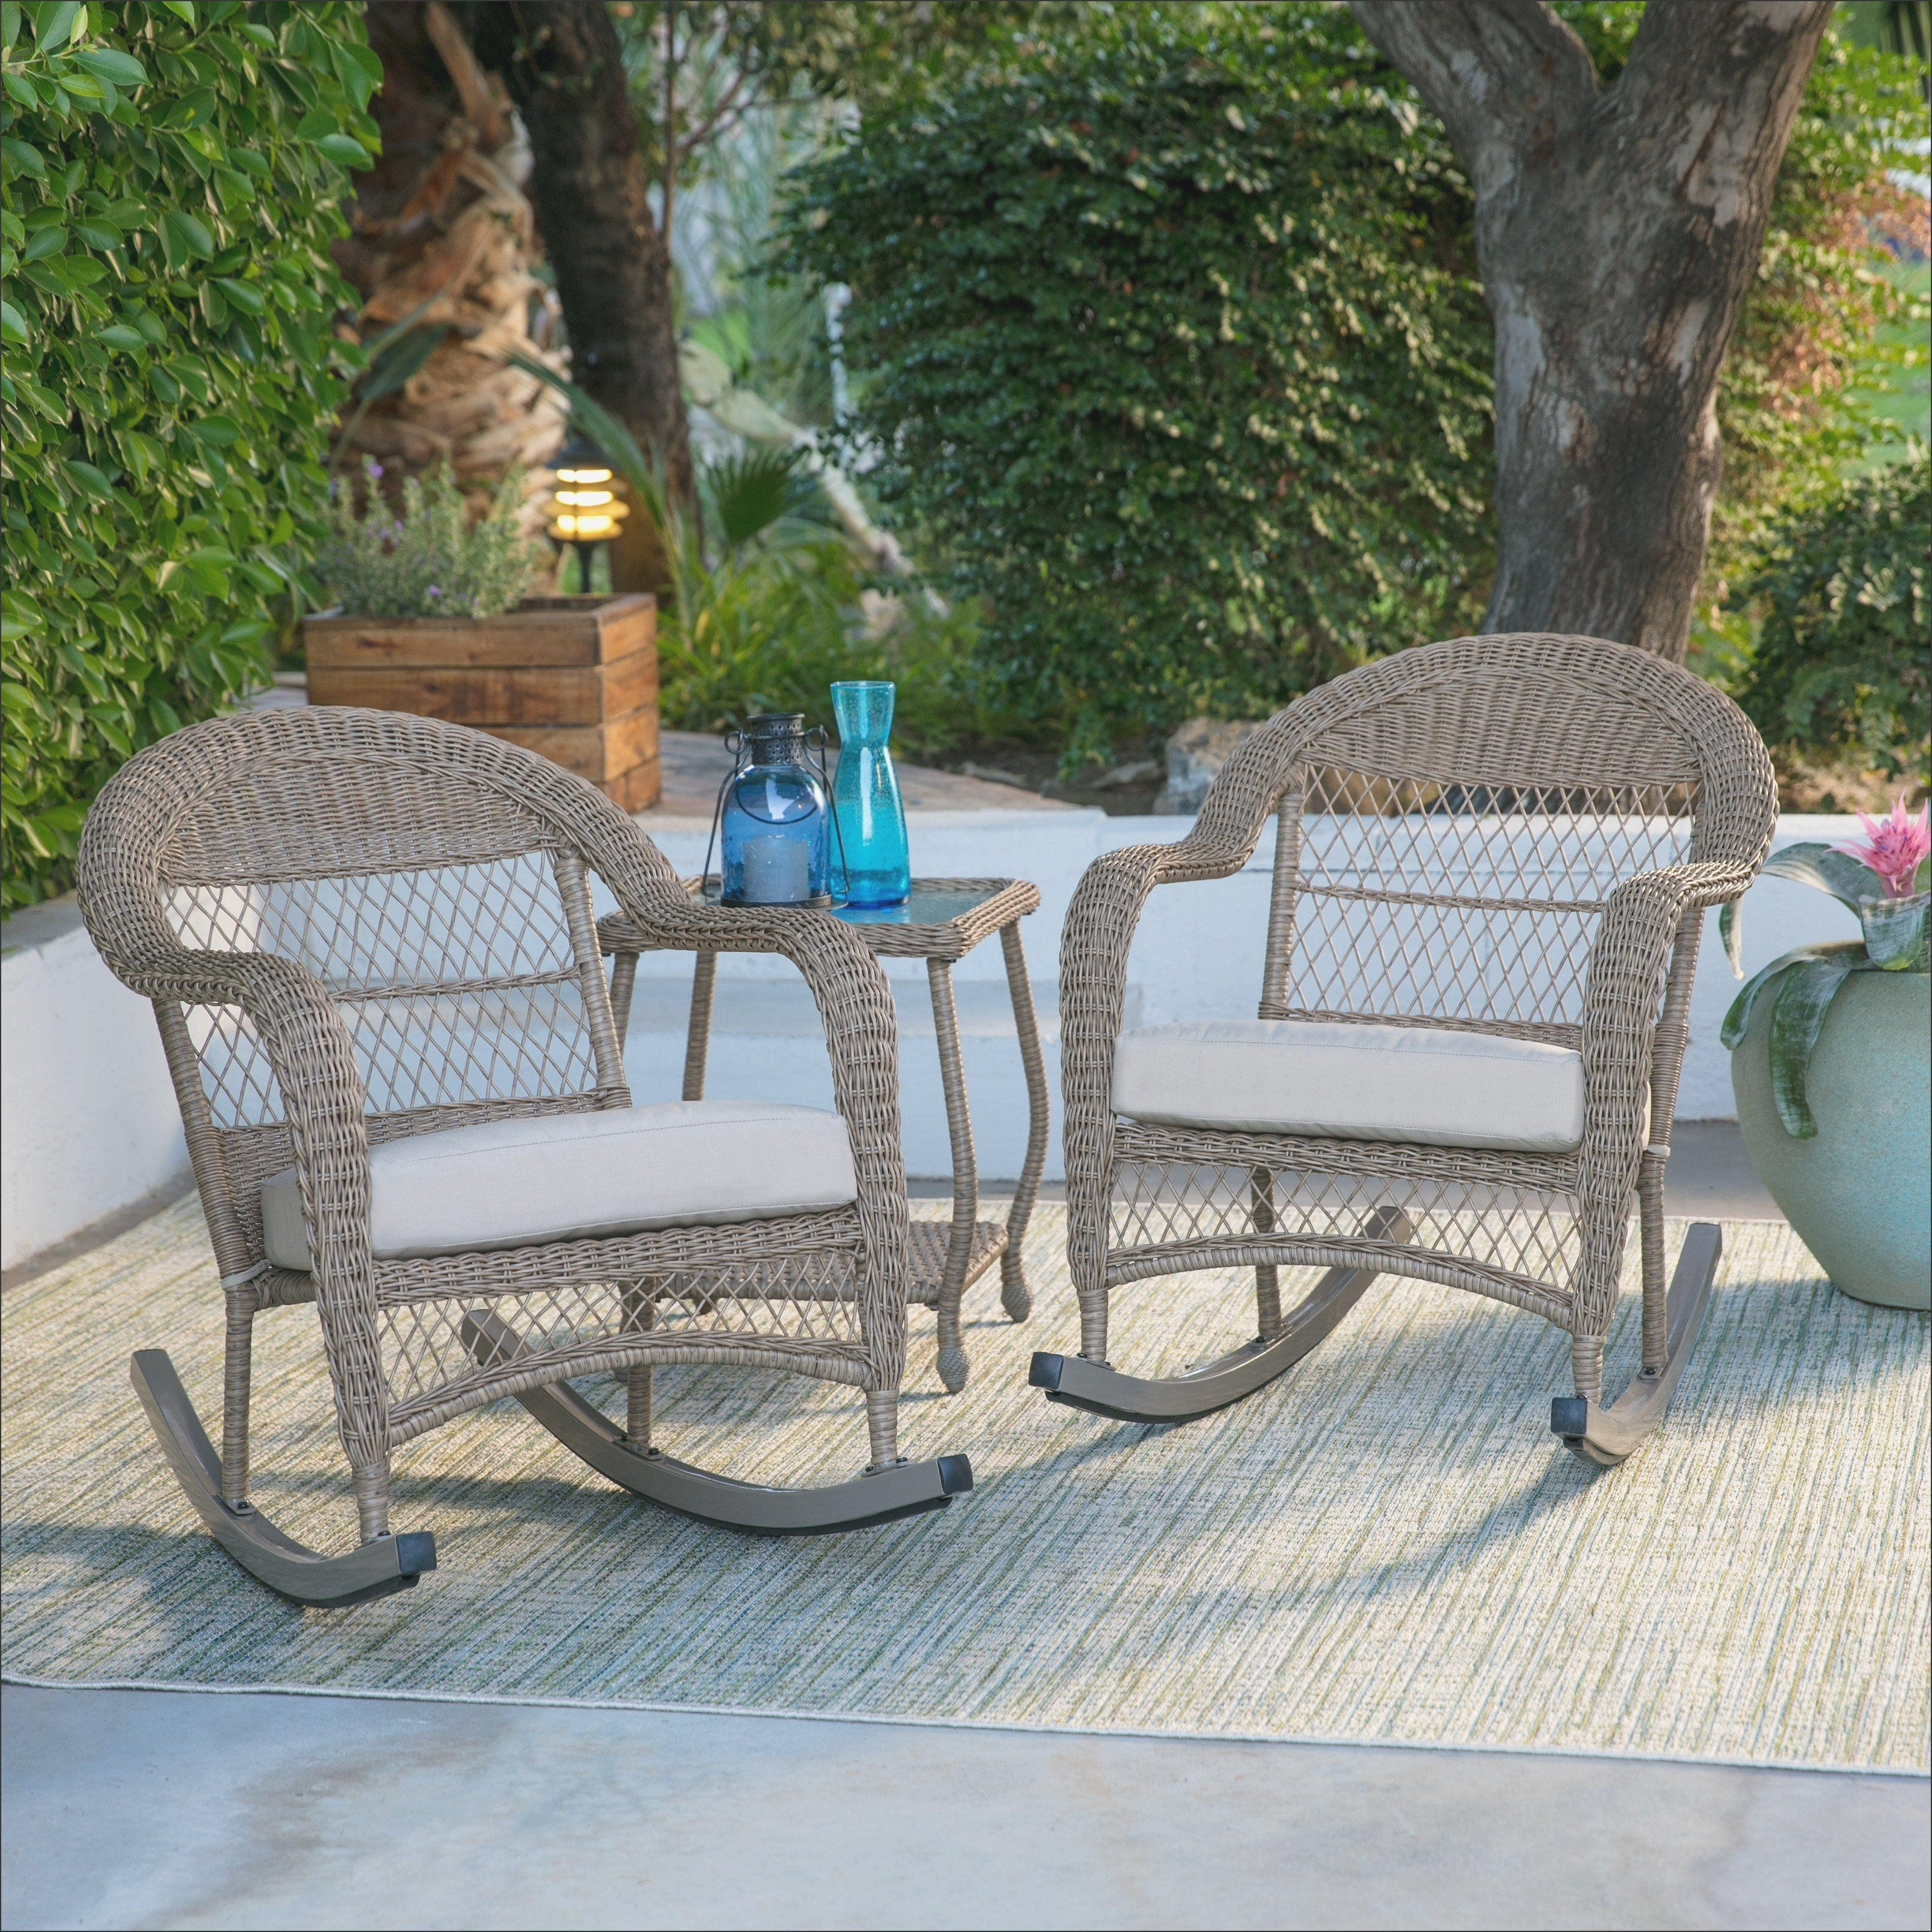 Widely Used Patio Kroger Patio Furniture Kroger Outdoor Furniture Concept Of Inside Kroger Outdoor Lanterns (View 2 of 20)